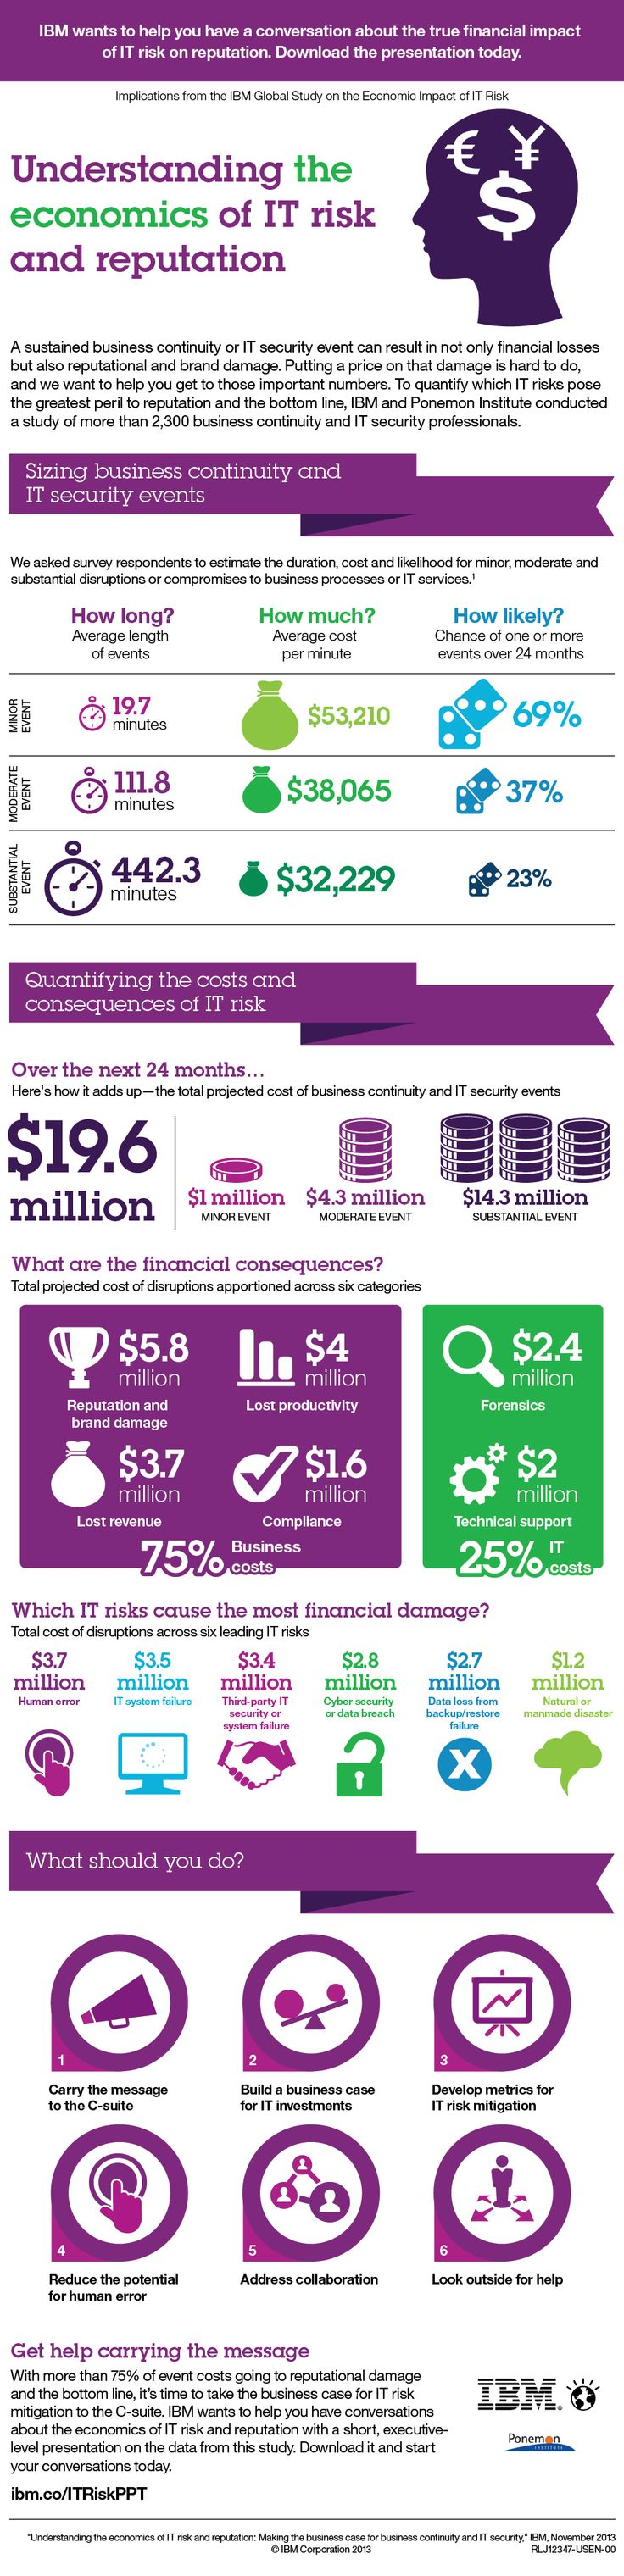 telstra super financial planning financial services guide